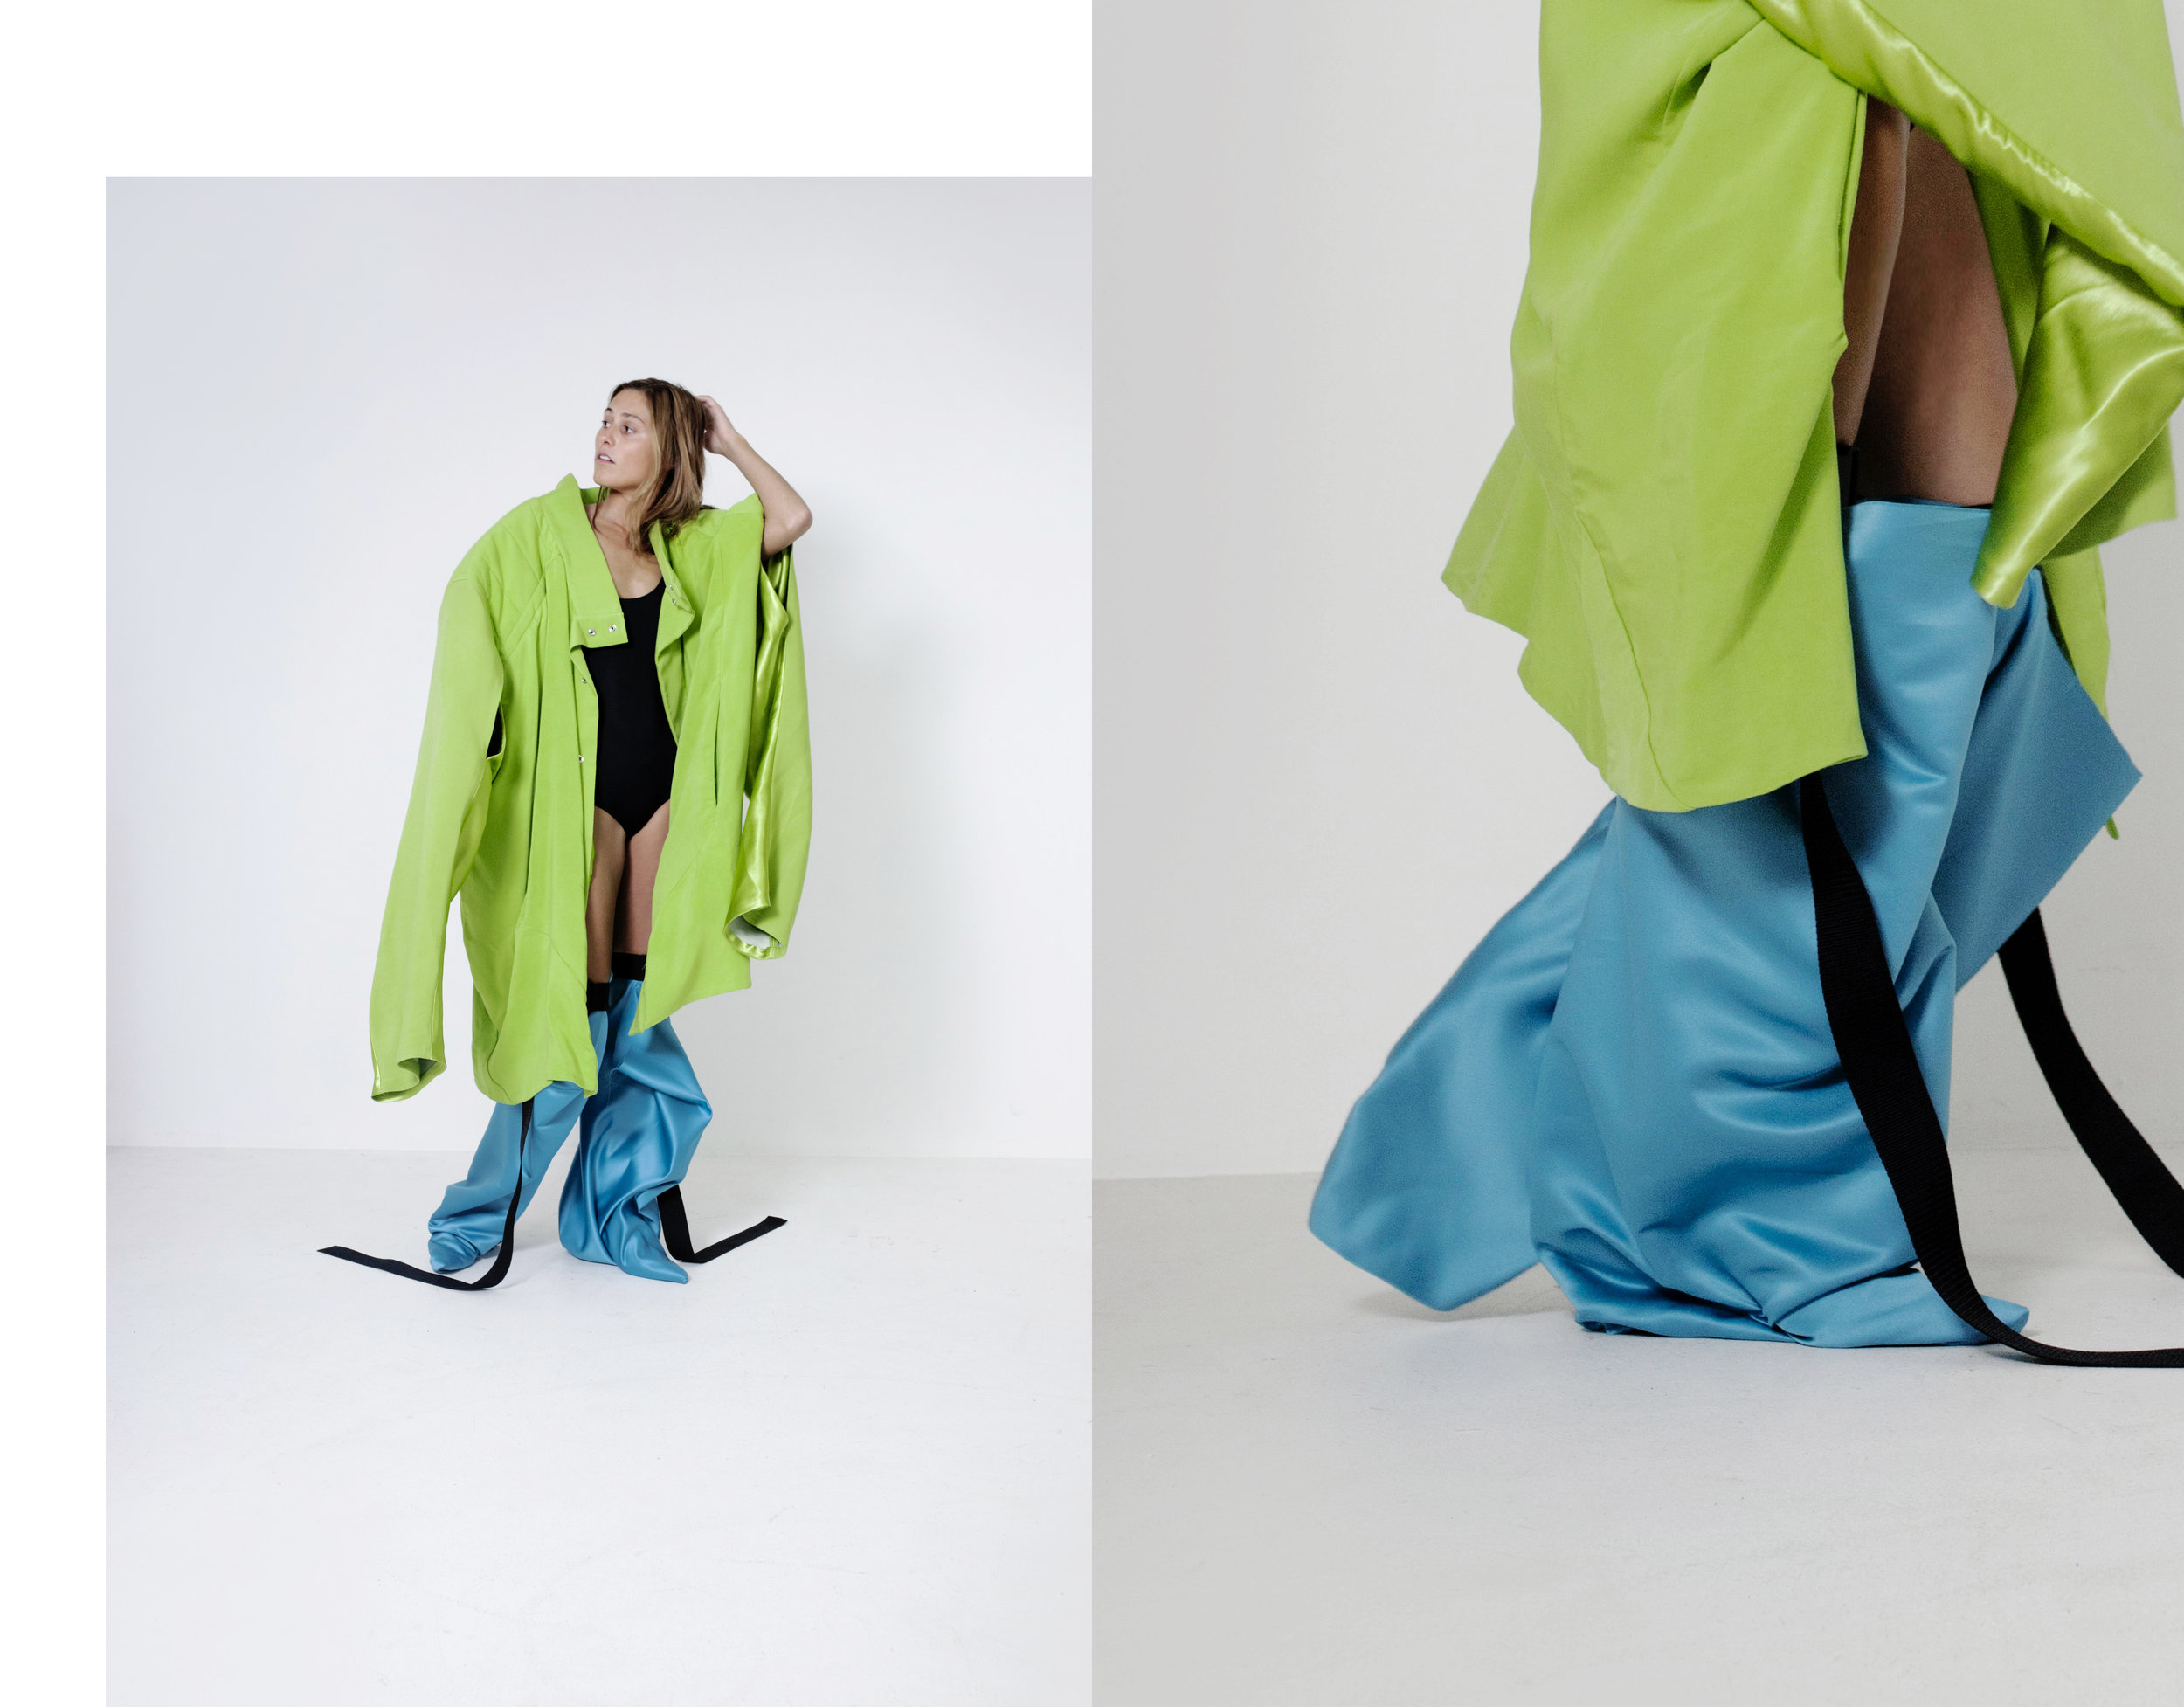 Ella BouchtBA Graduate Collection -